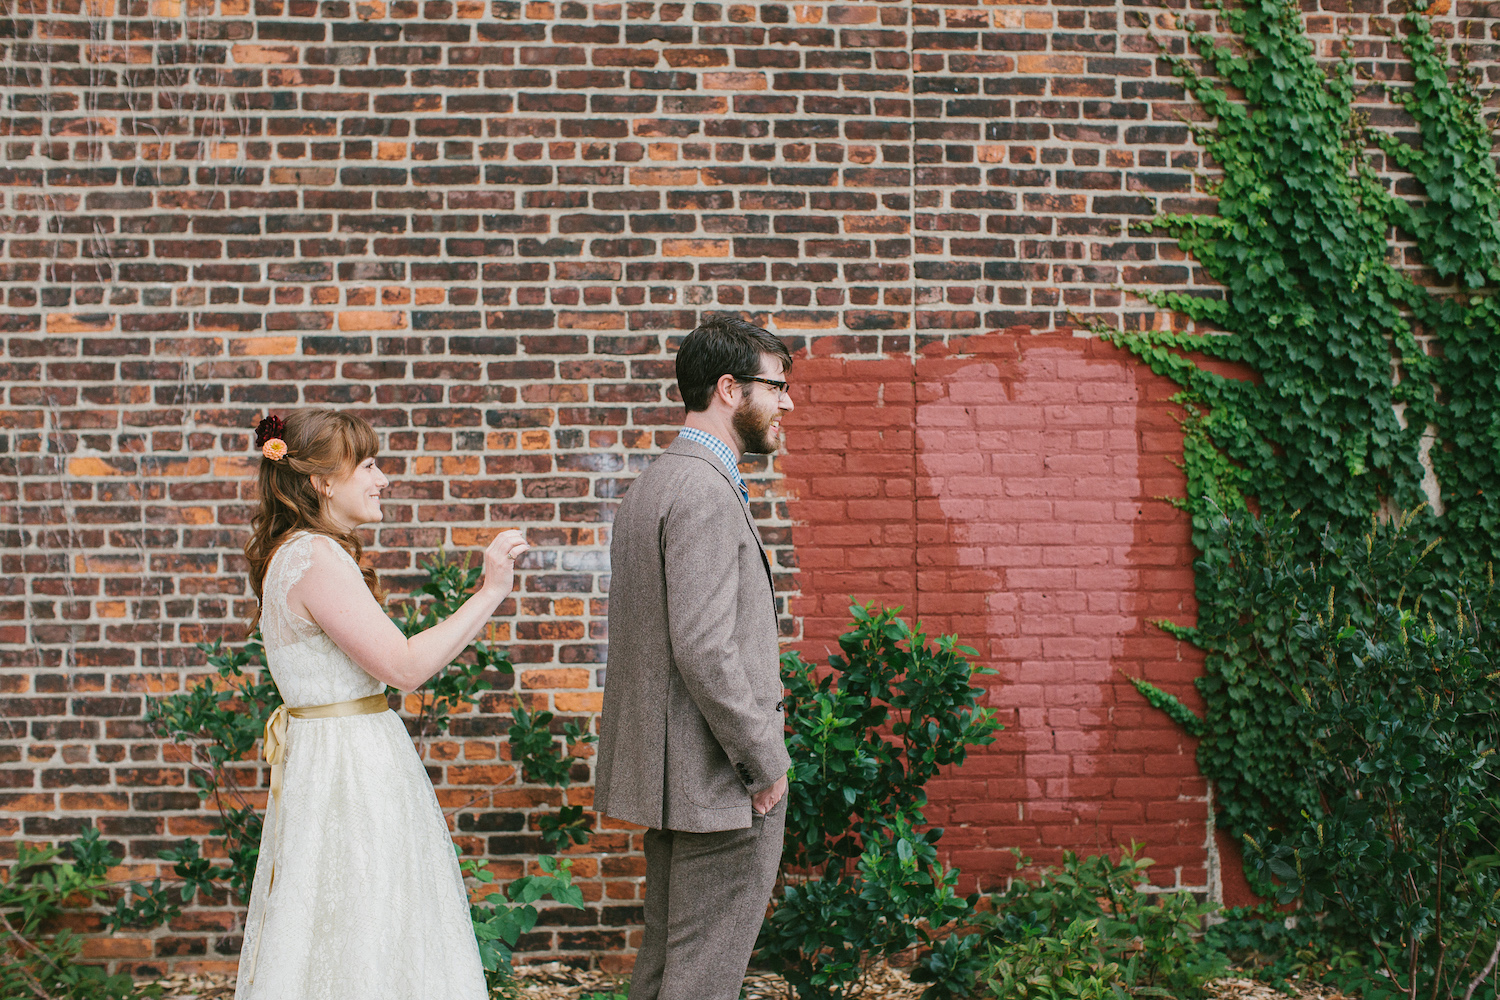 Full Aperture Floral & Corey Torpie Photography  - Brooklyn Wedding - 26.jpeg